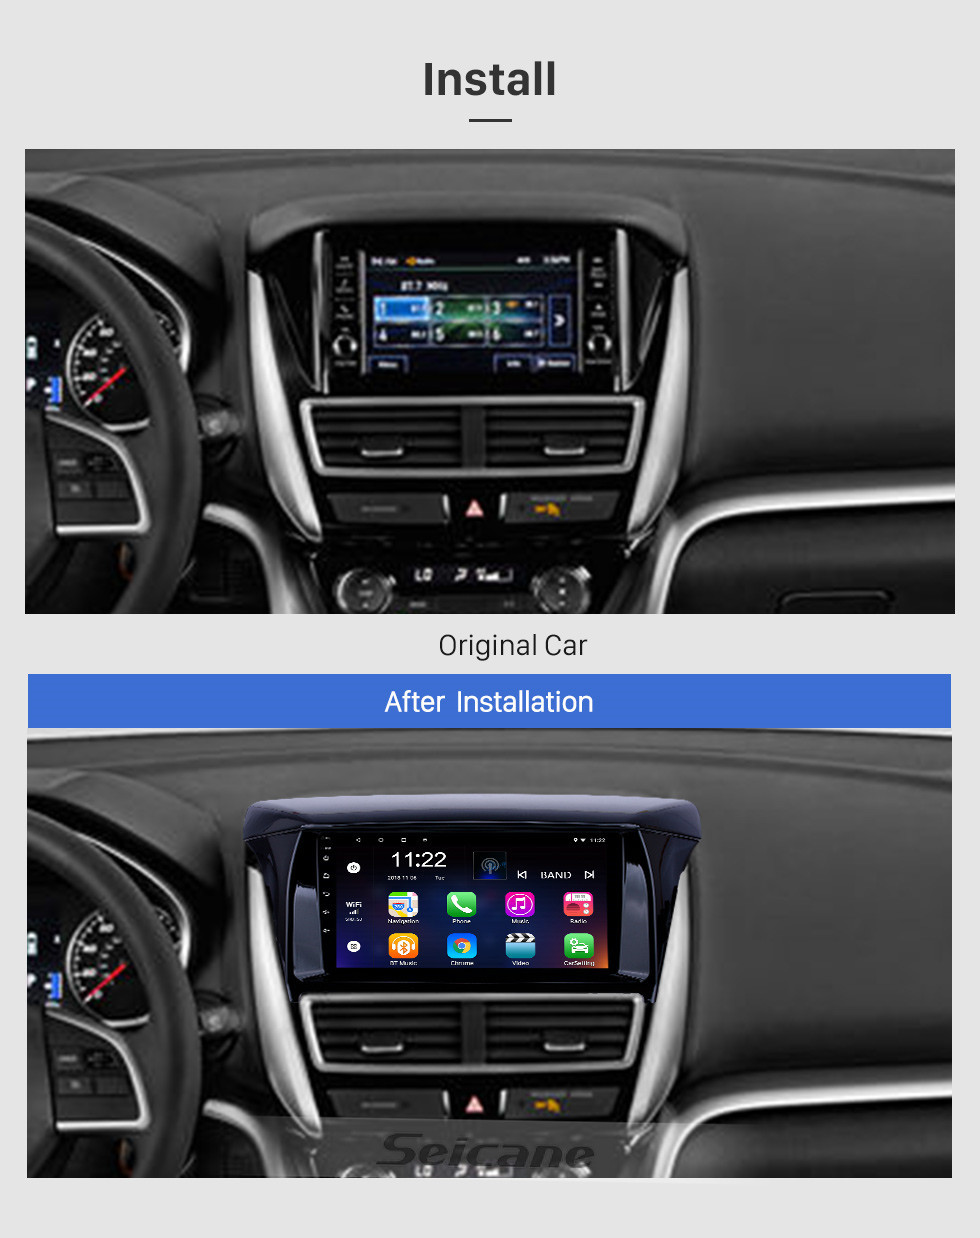 Seicane OEM 9 inch Android 10.0 Radio for 2018 Mitsubishi Eclipse Bluetooth WIFI HD Touchscreen GPS Navigation support Carplay DVR Digital TV